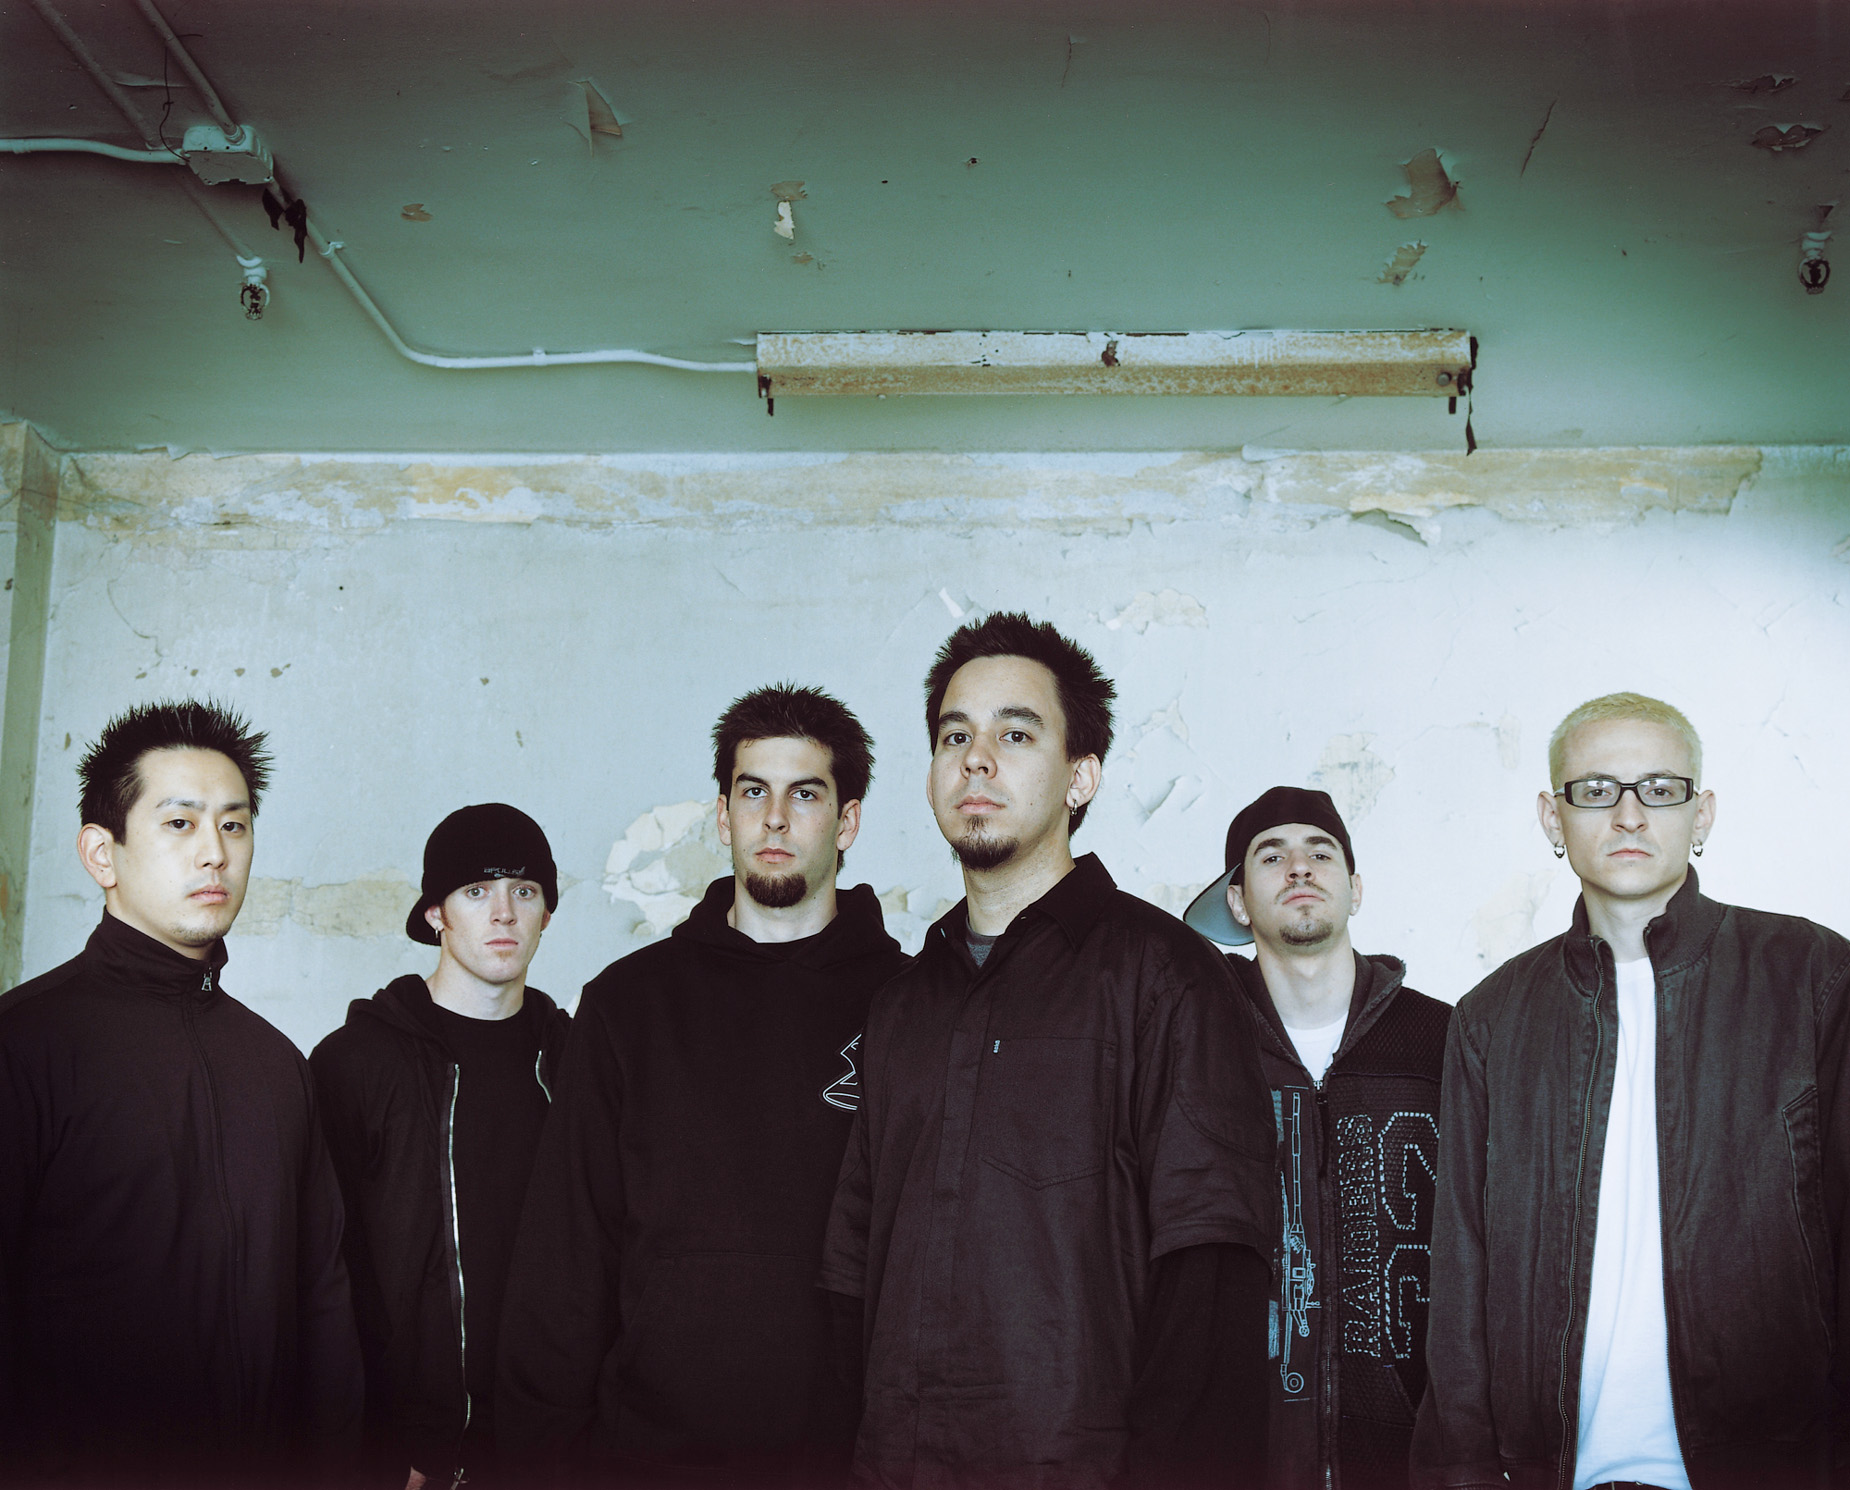 Members of the rock band Linkin Park are seen in this file photo.